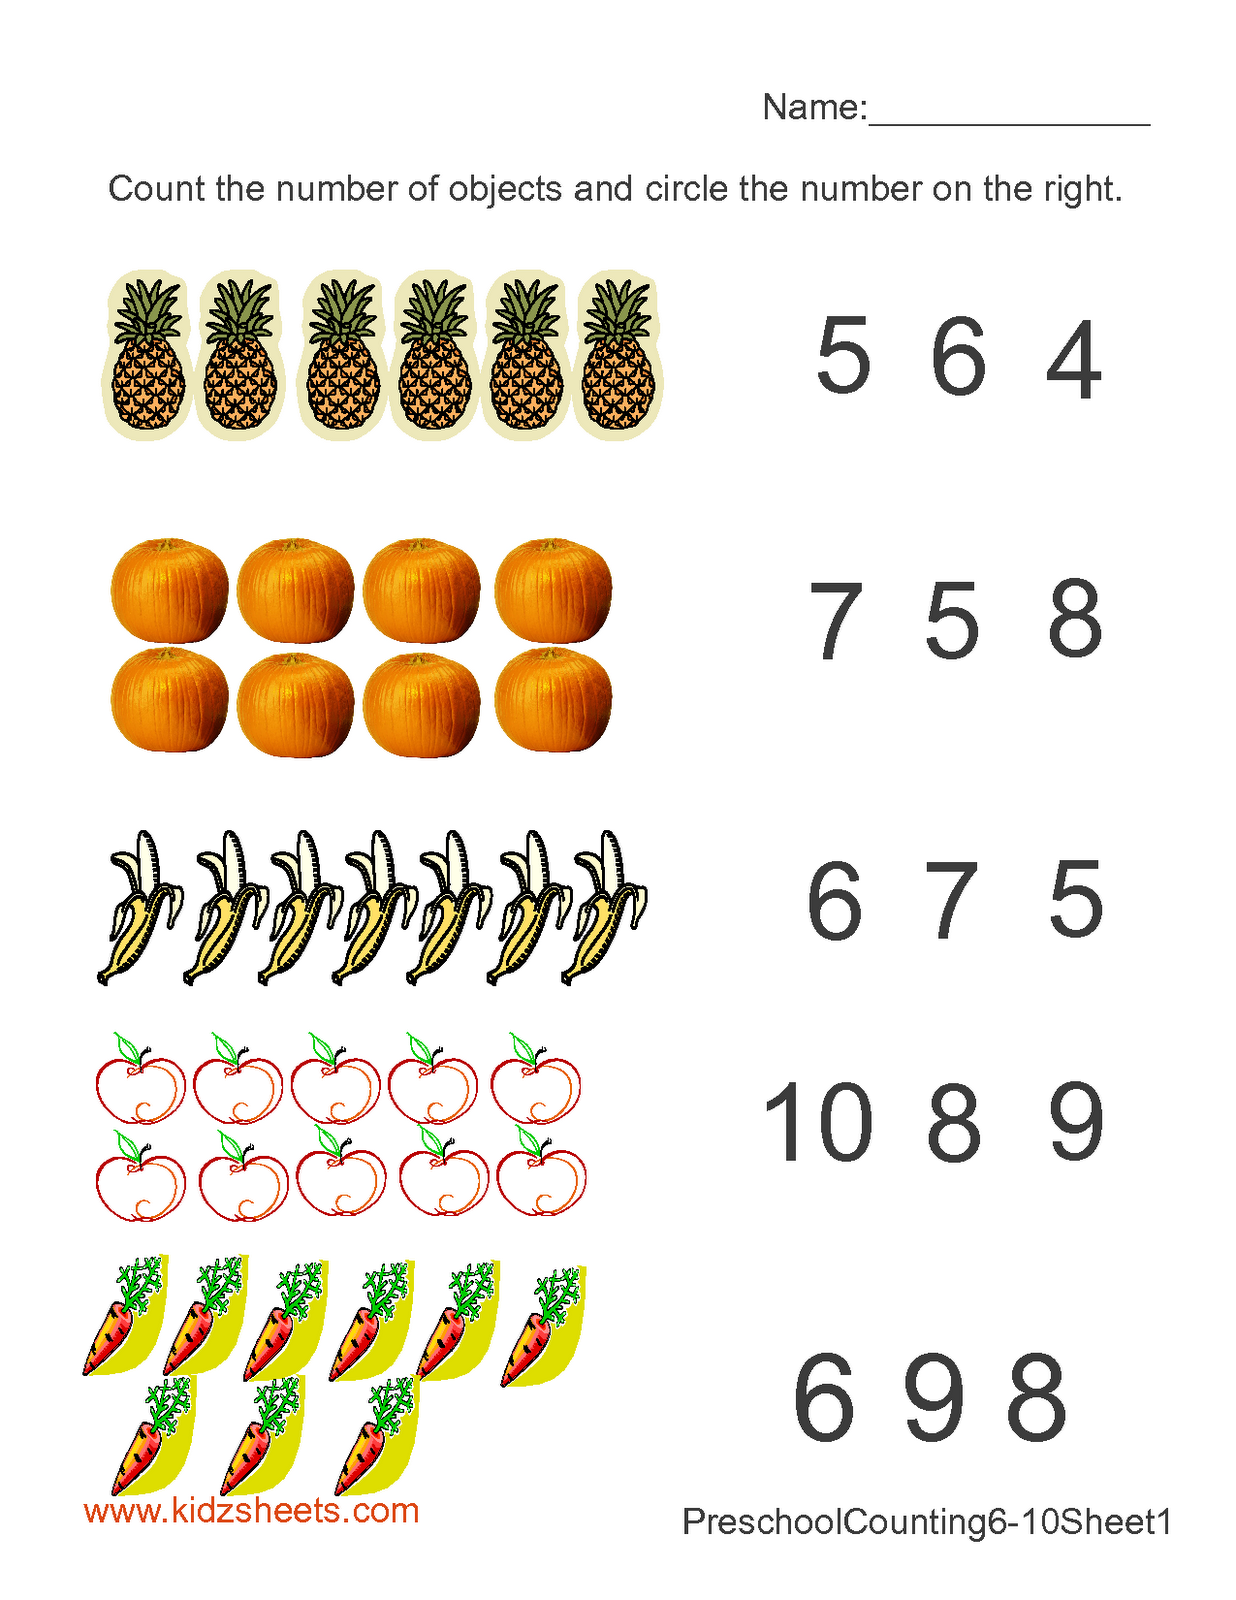 Preschool Counting Numbers Worksheet1 With Images